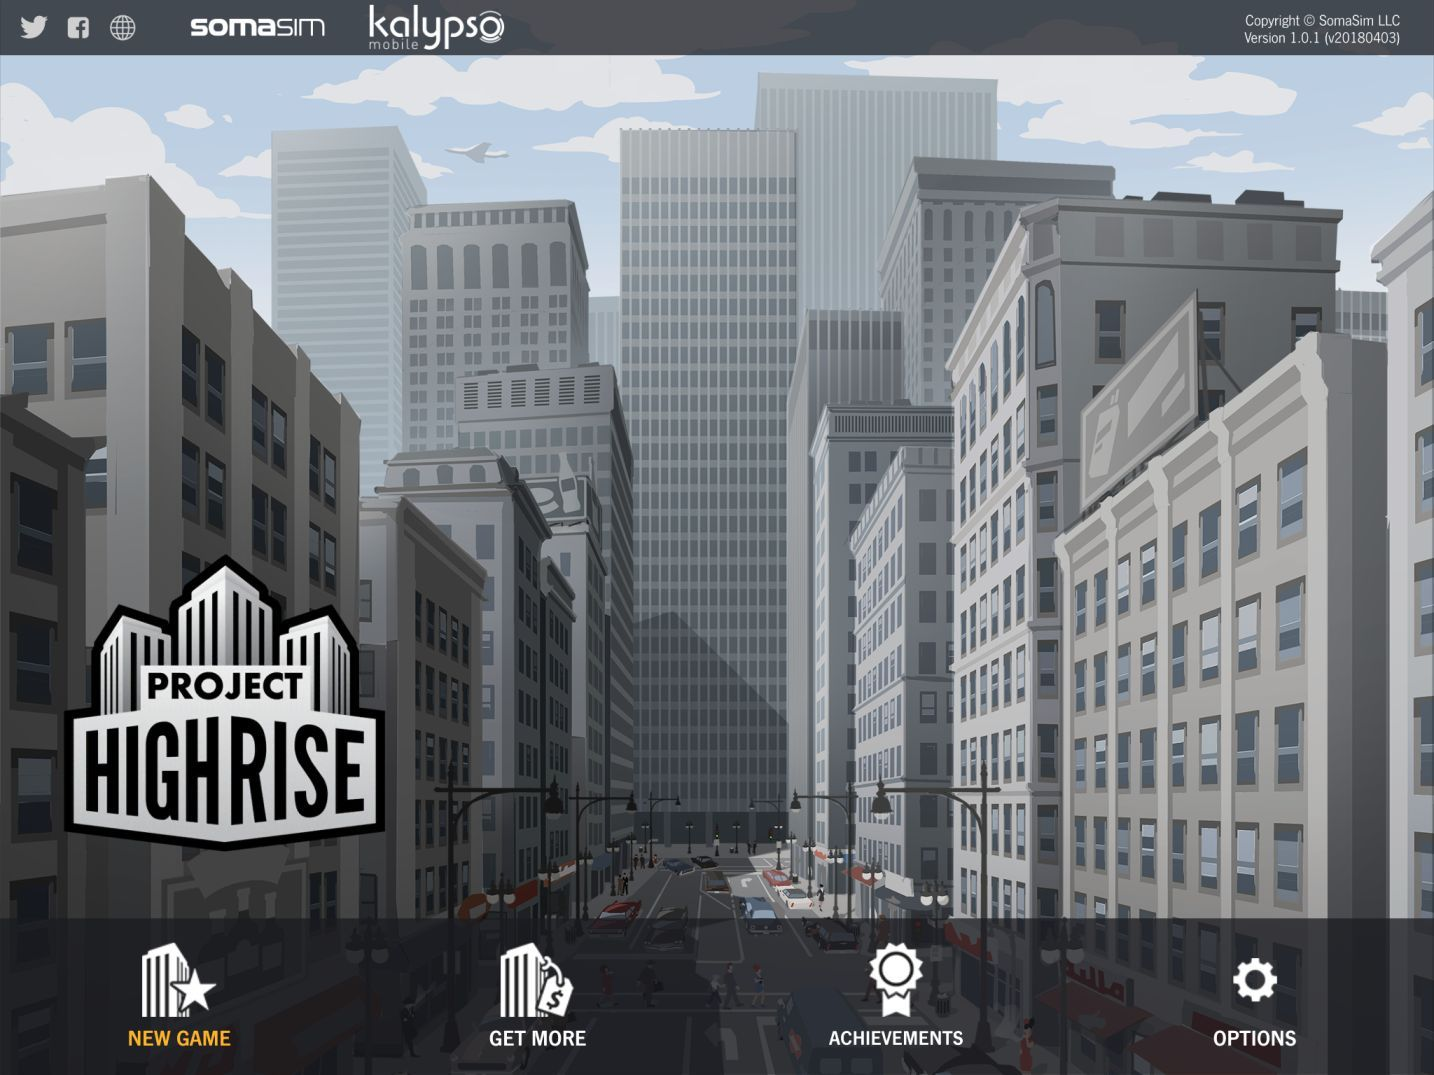 Project Highrise (copie d'écran 1 sur Android)